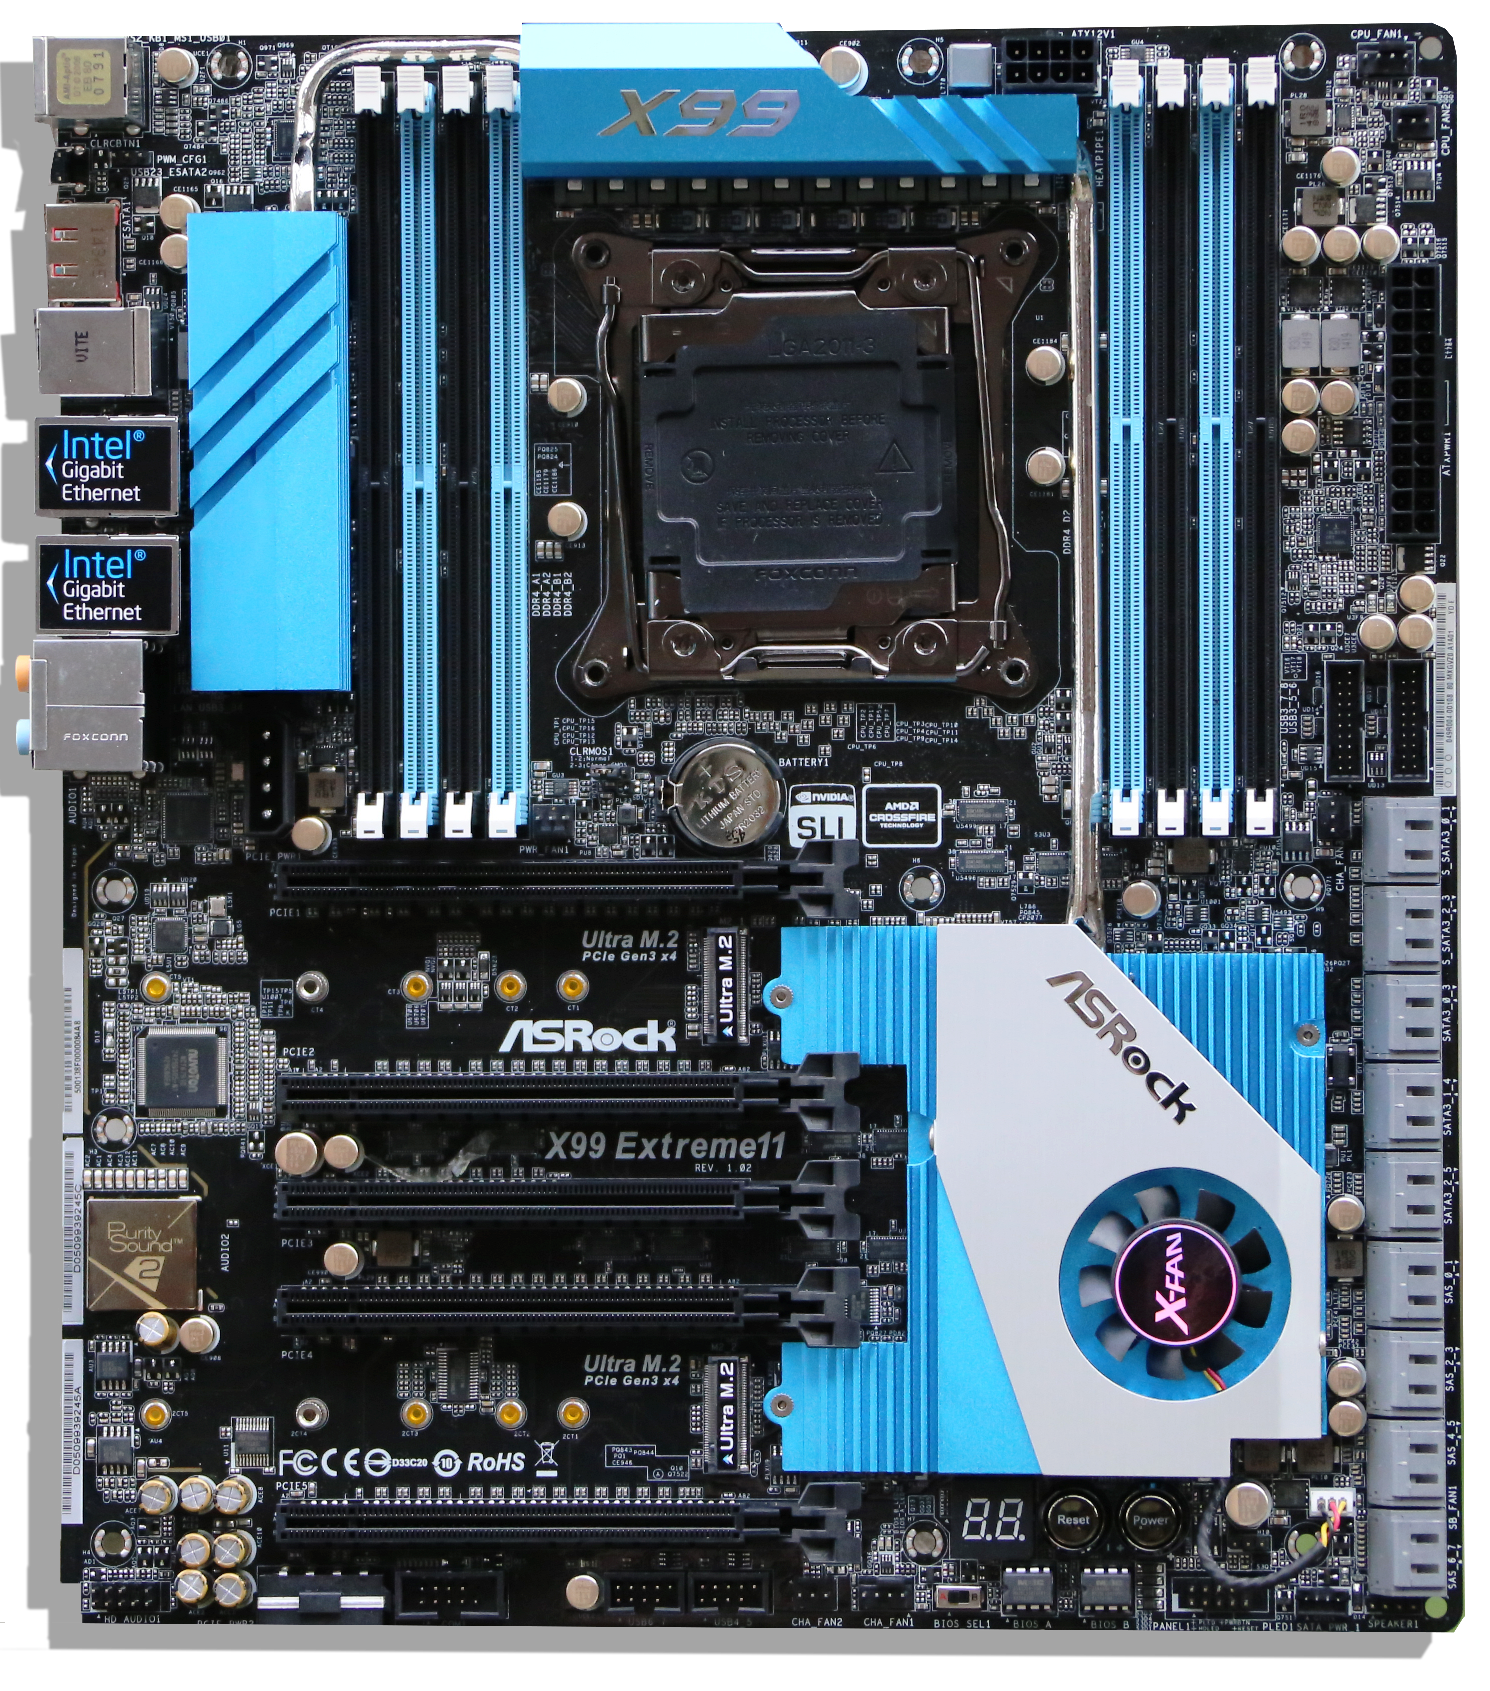 ASRock X99 Extreme11 Motherboard Overview 2